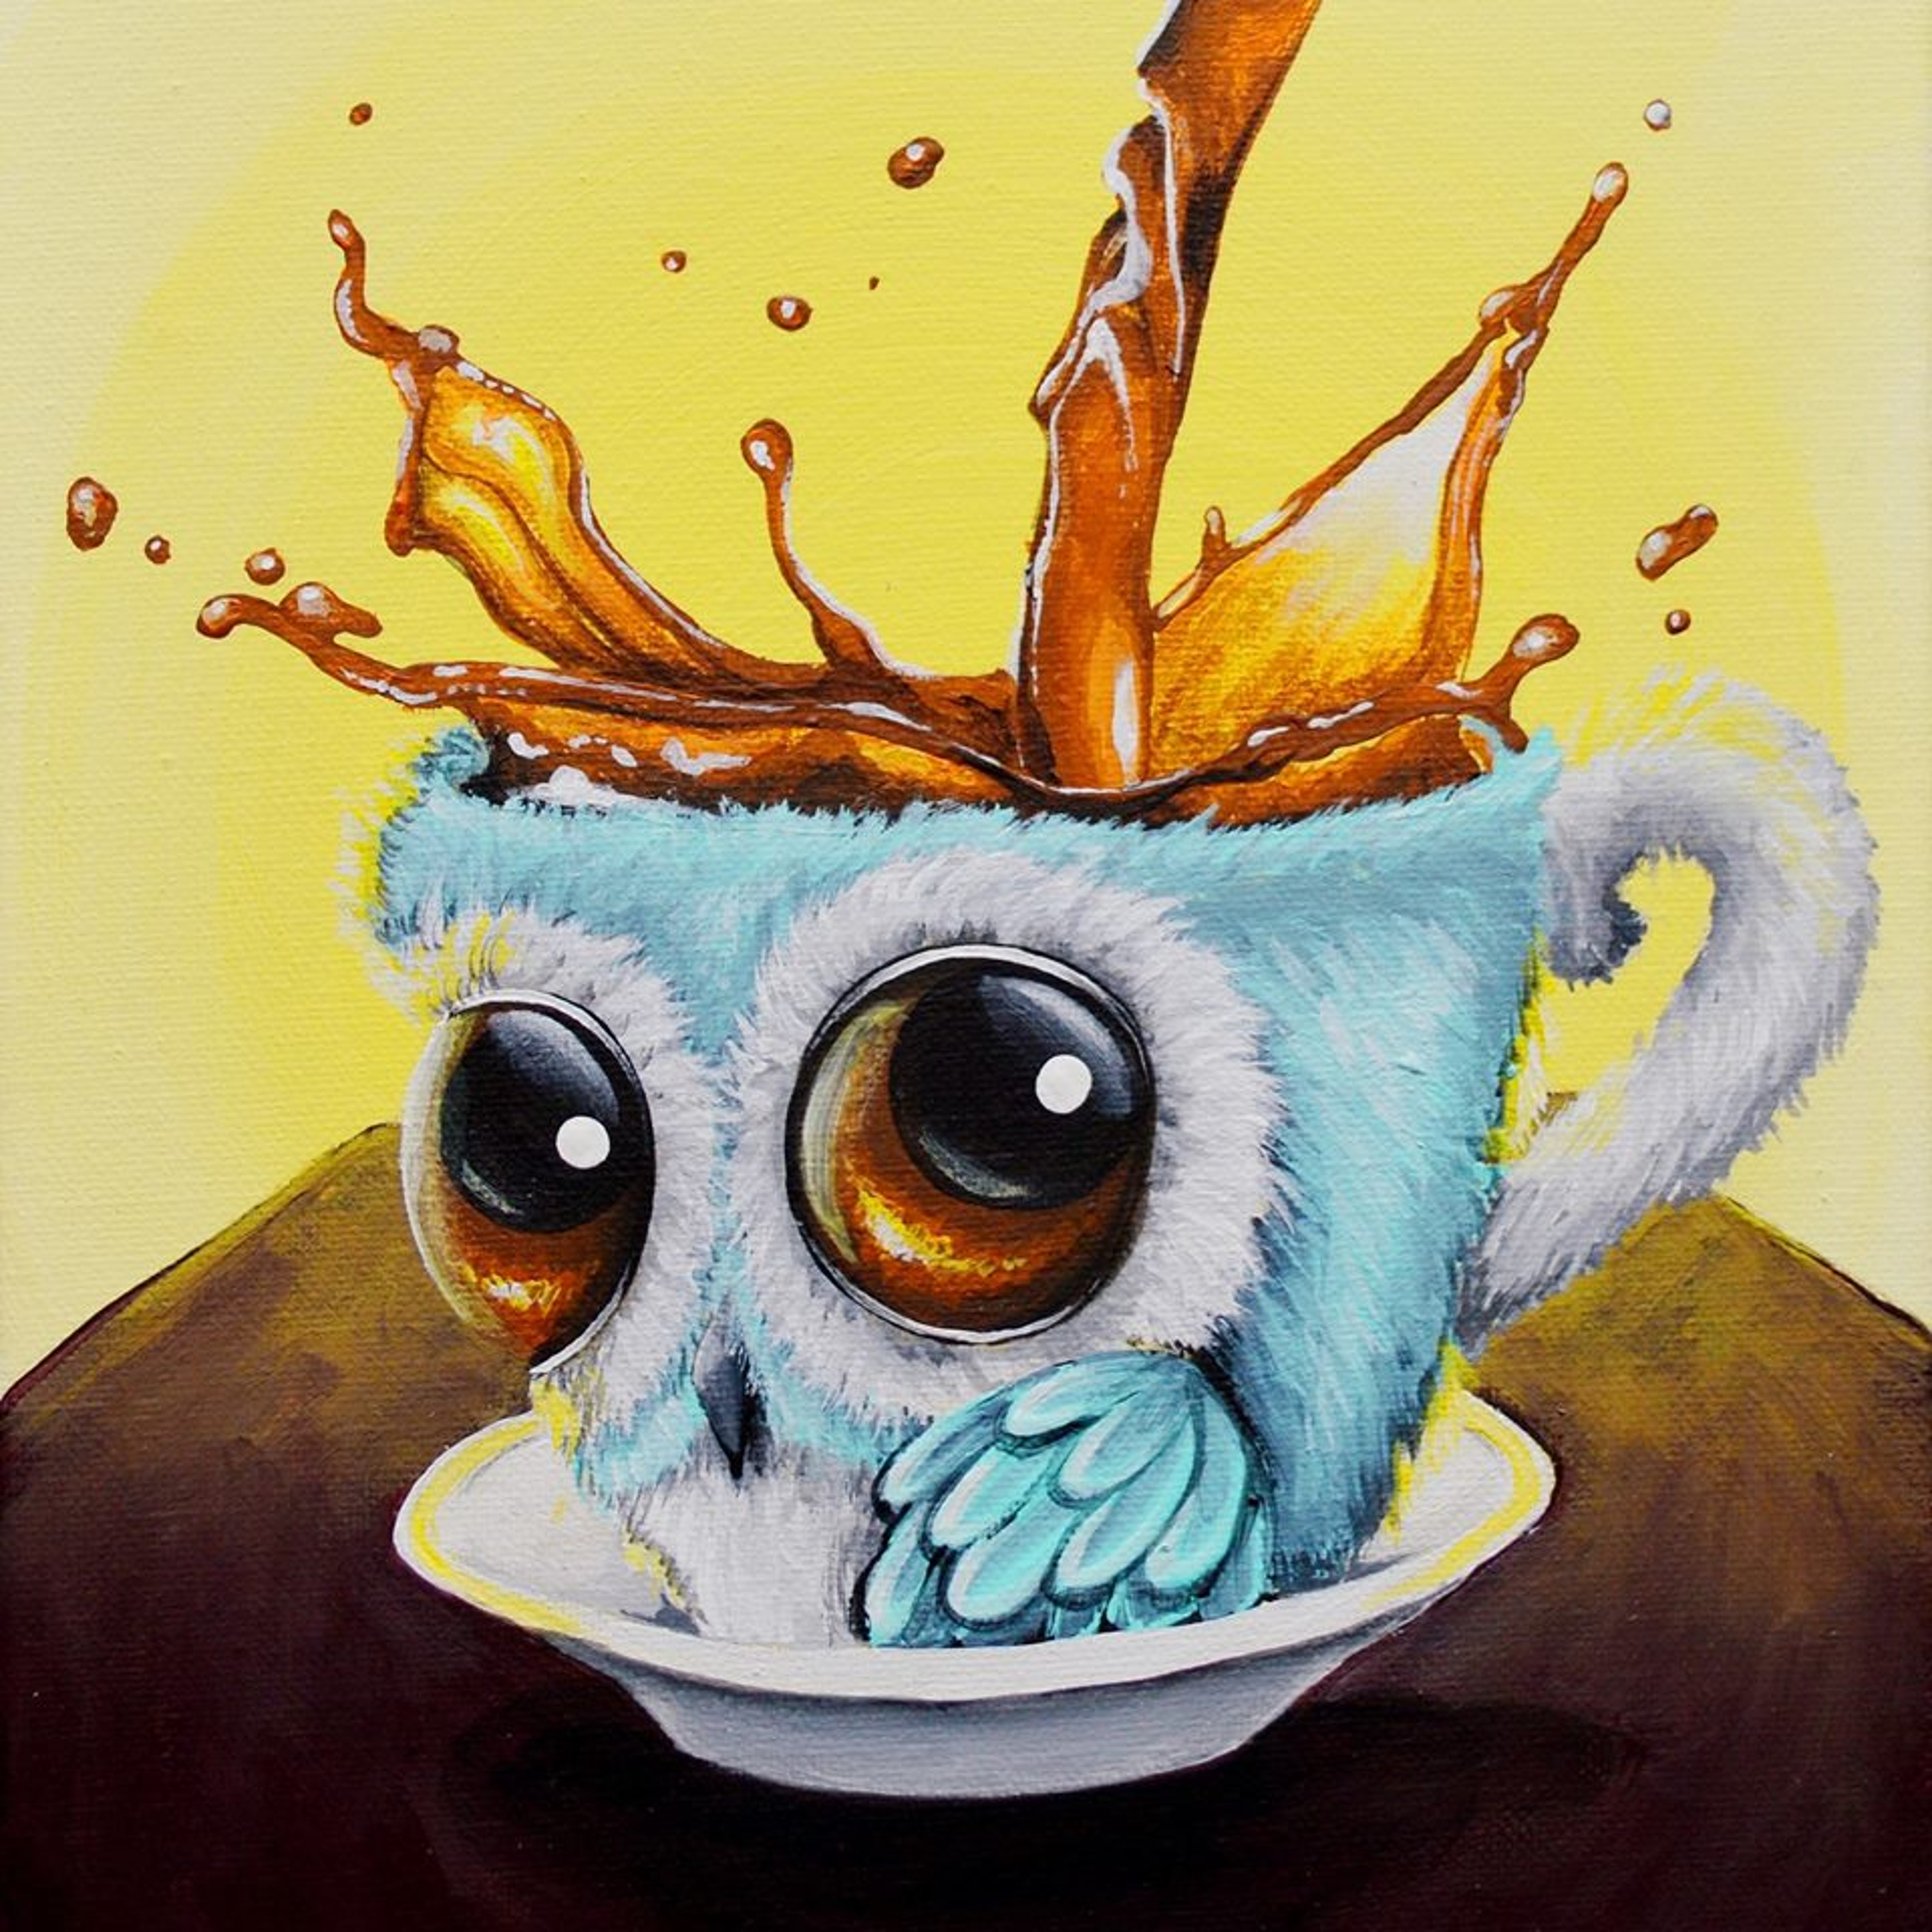 I Love Owls , I Paint Them All The Time :)